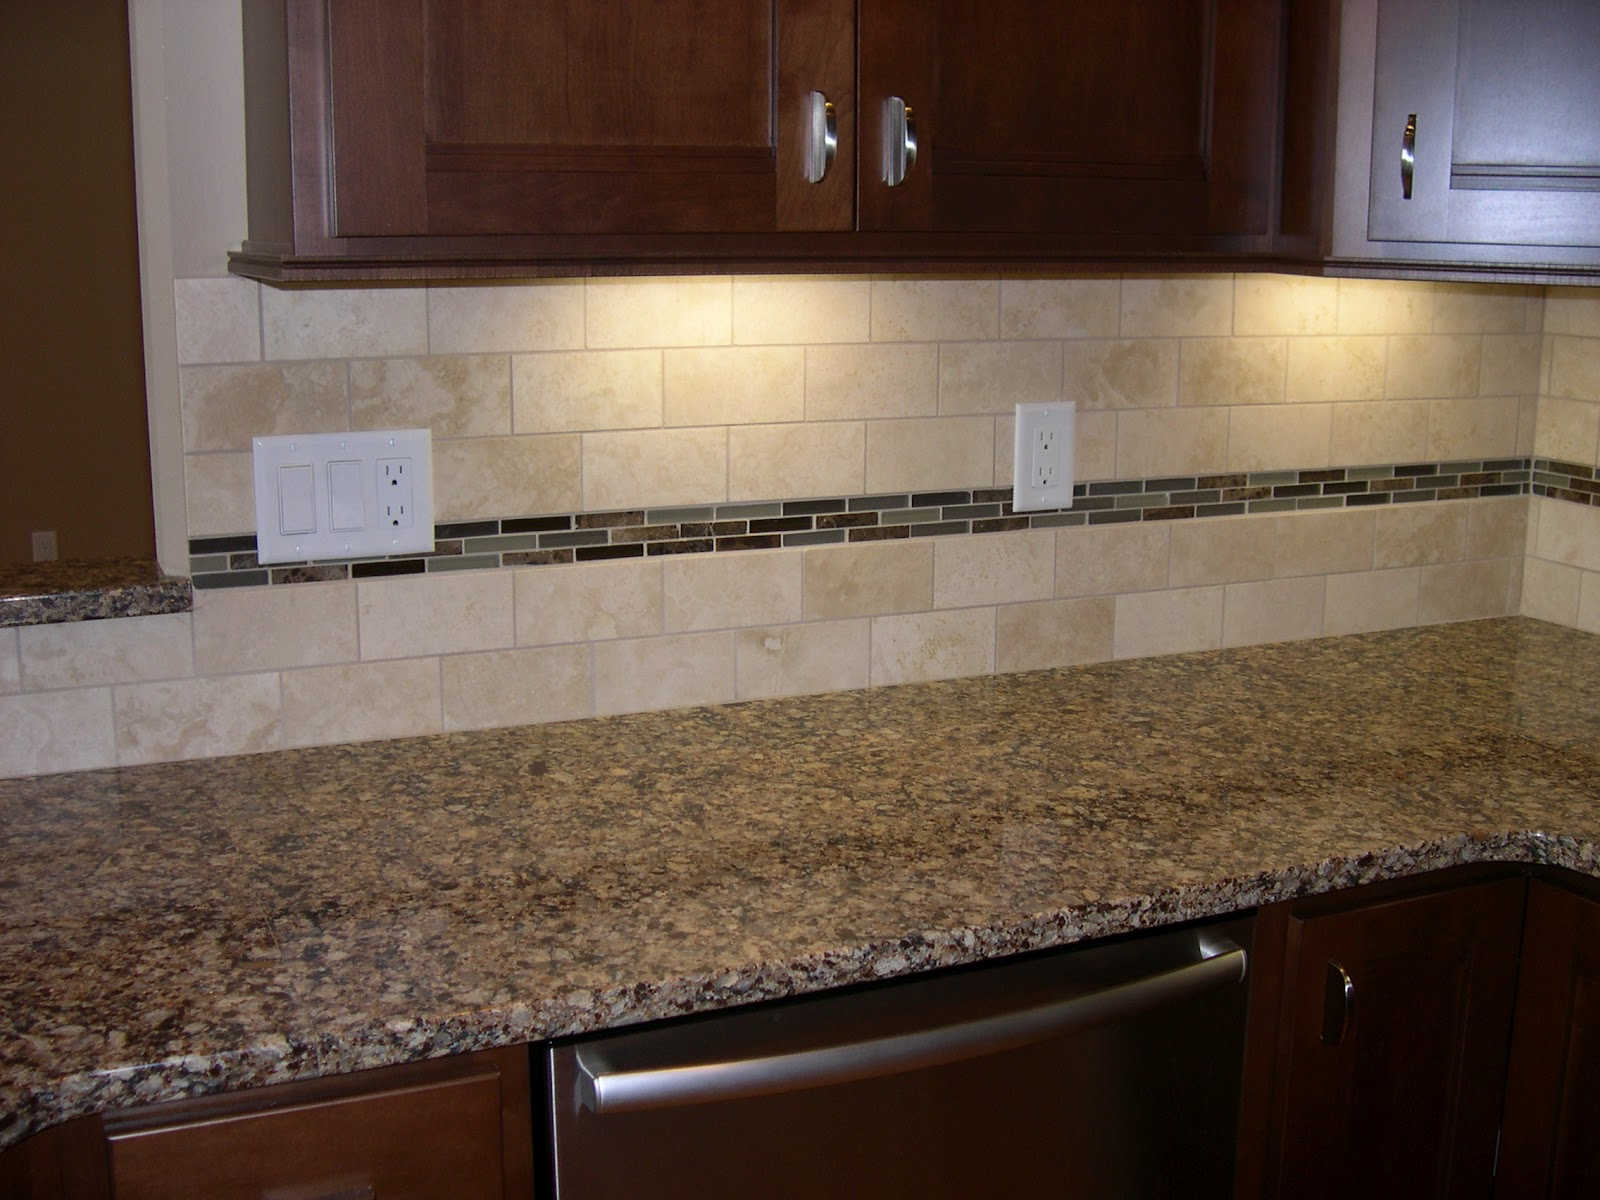 Jill tentinger june 2012 Stone backsplash tile